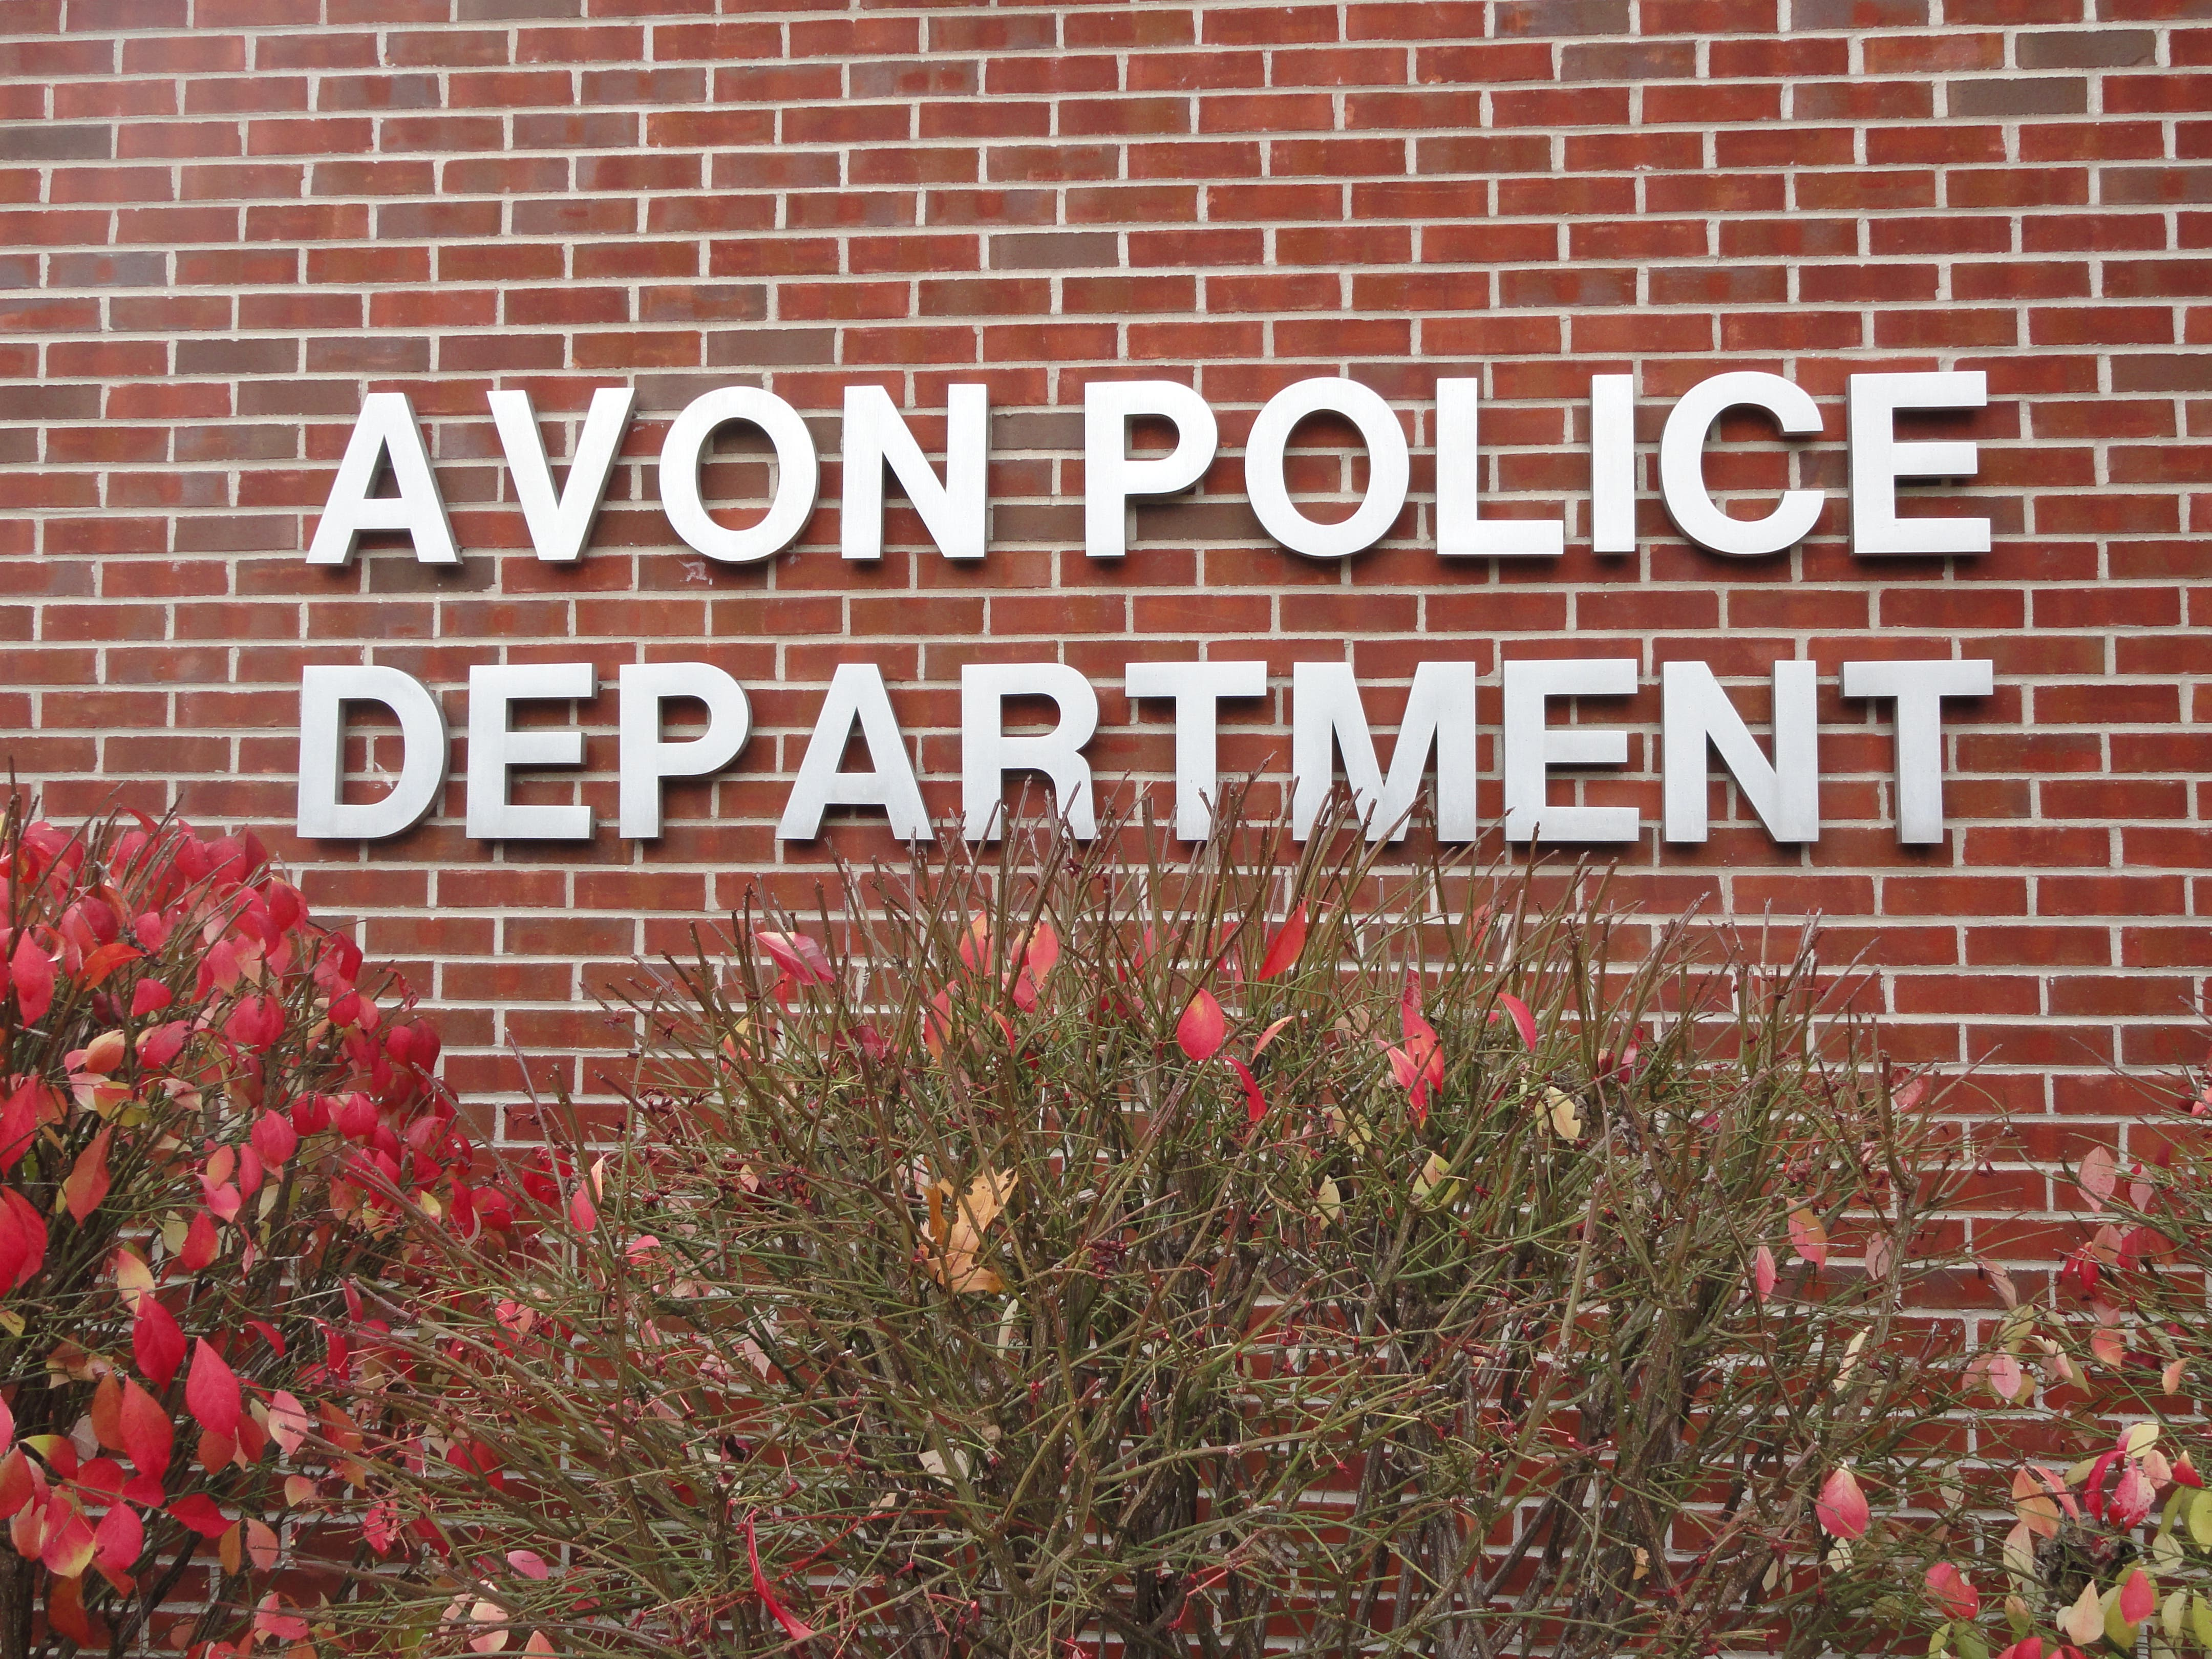 Former Avon Police Officer Arrested on Charges of